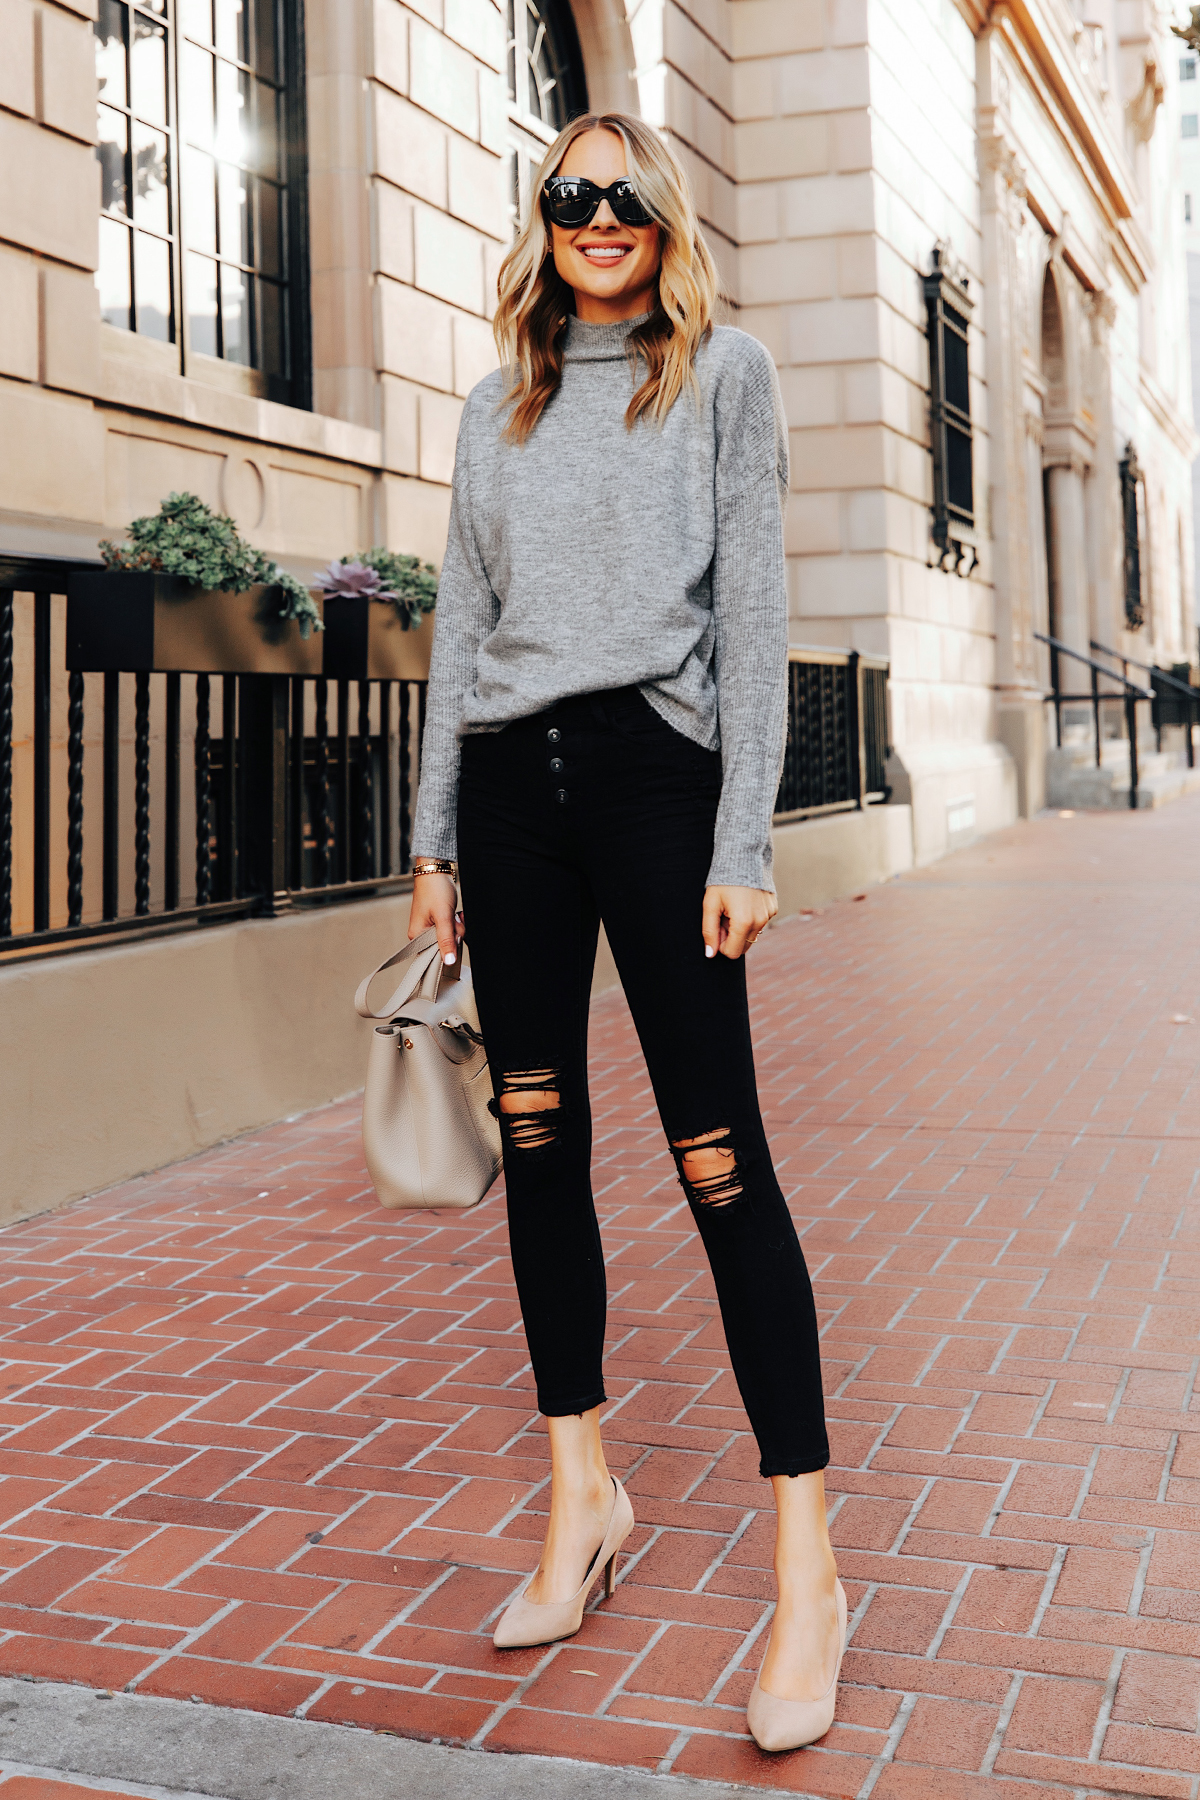 Chic + Affordable Fall Outfit | Entire Outfit Under $80 ...